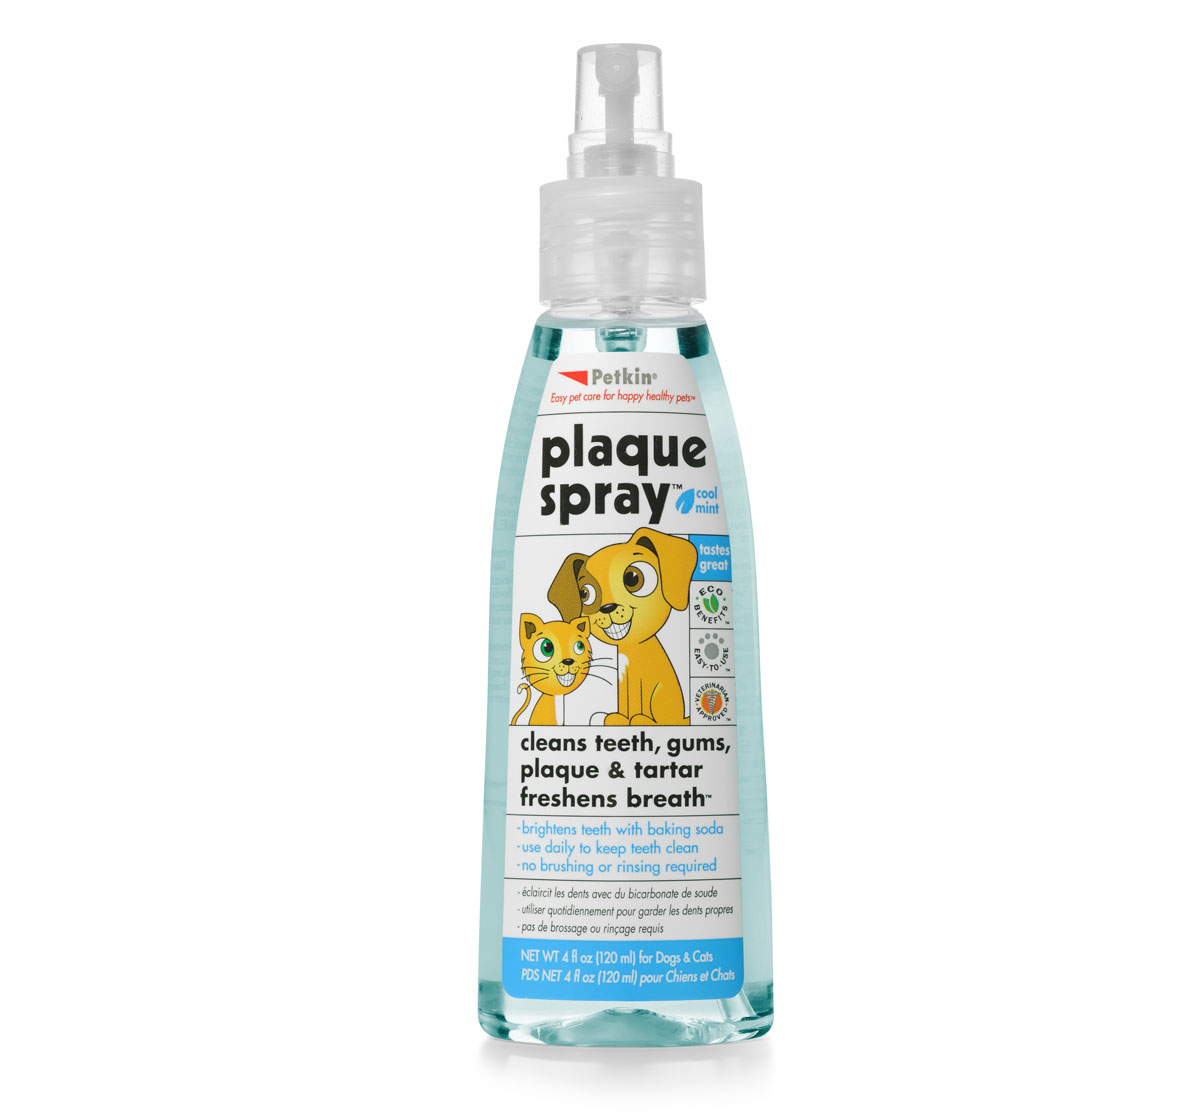 Petkin Plaque Spray Cool Mint For Dog & Cat - 120 ml